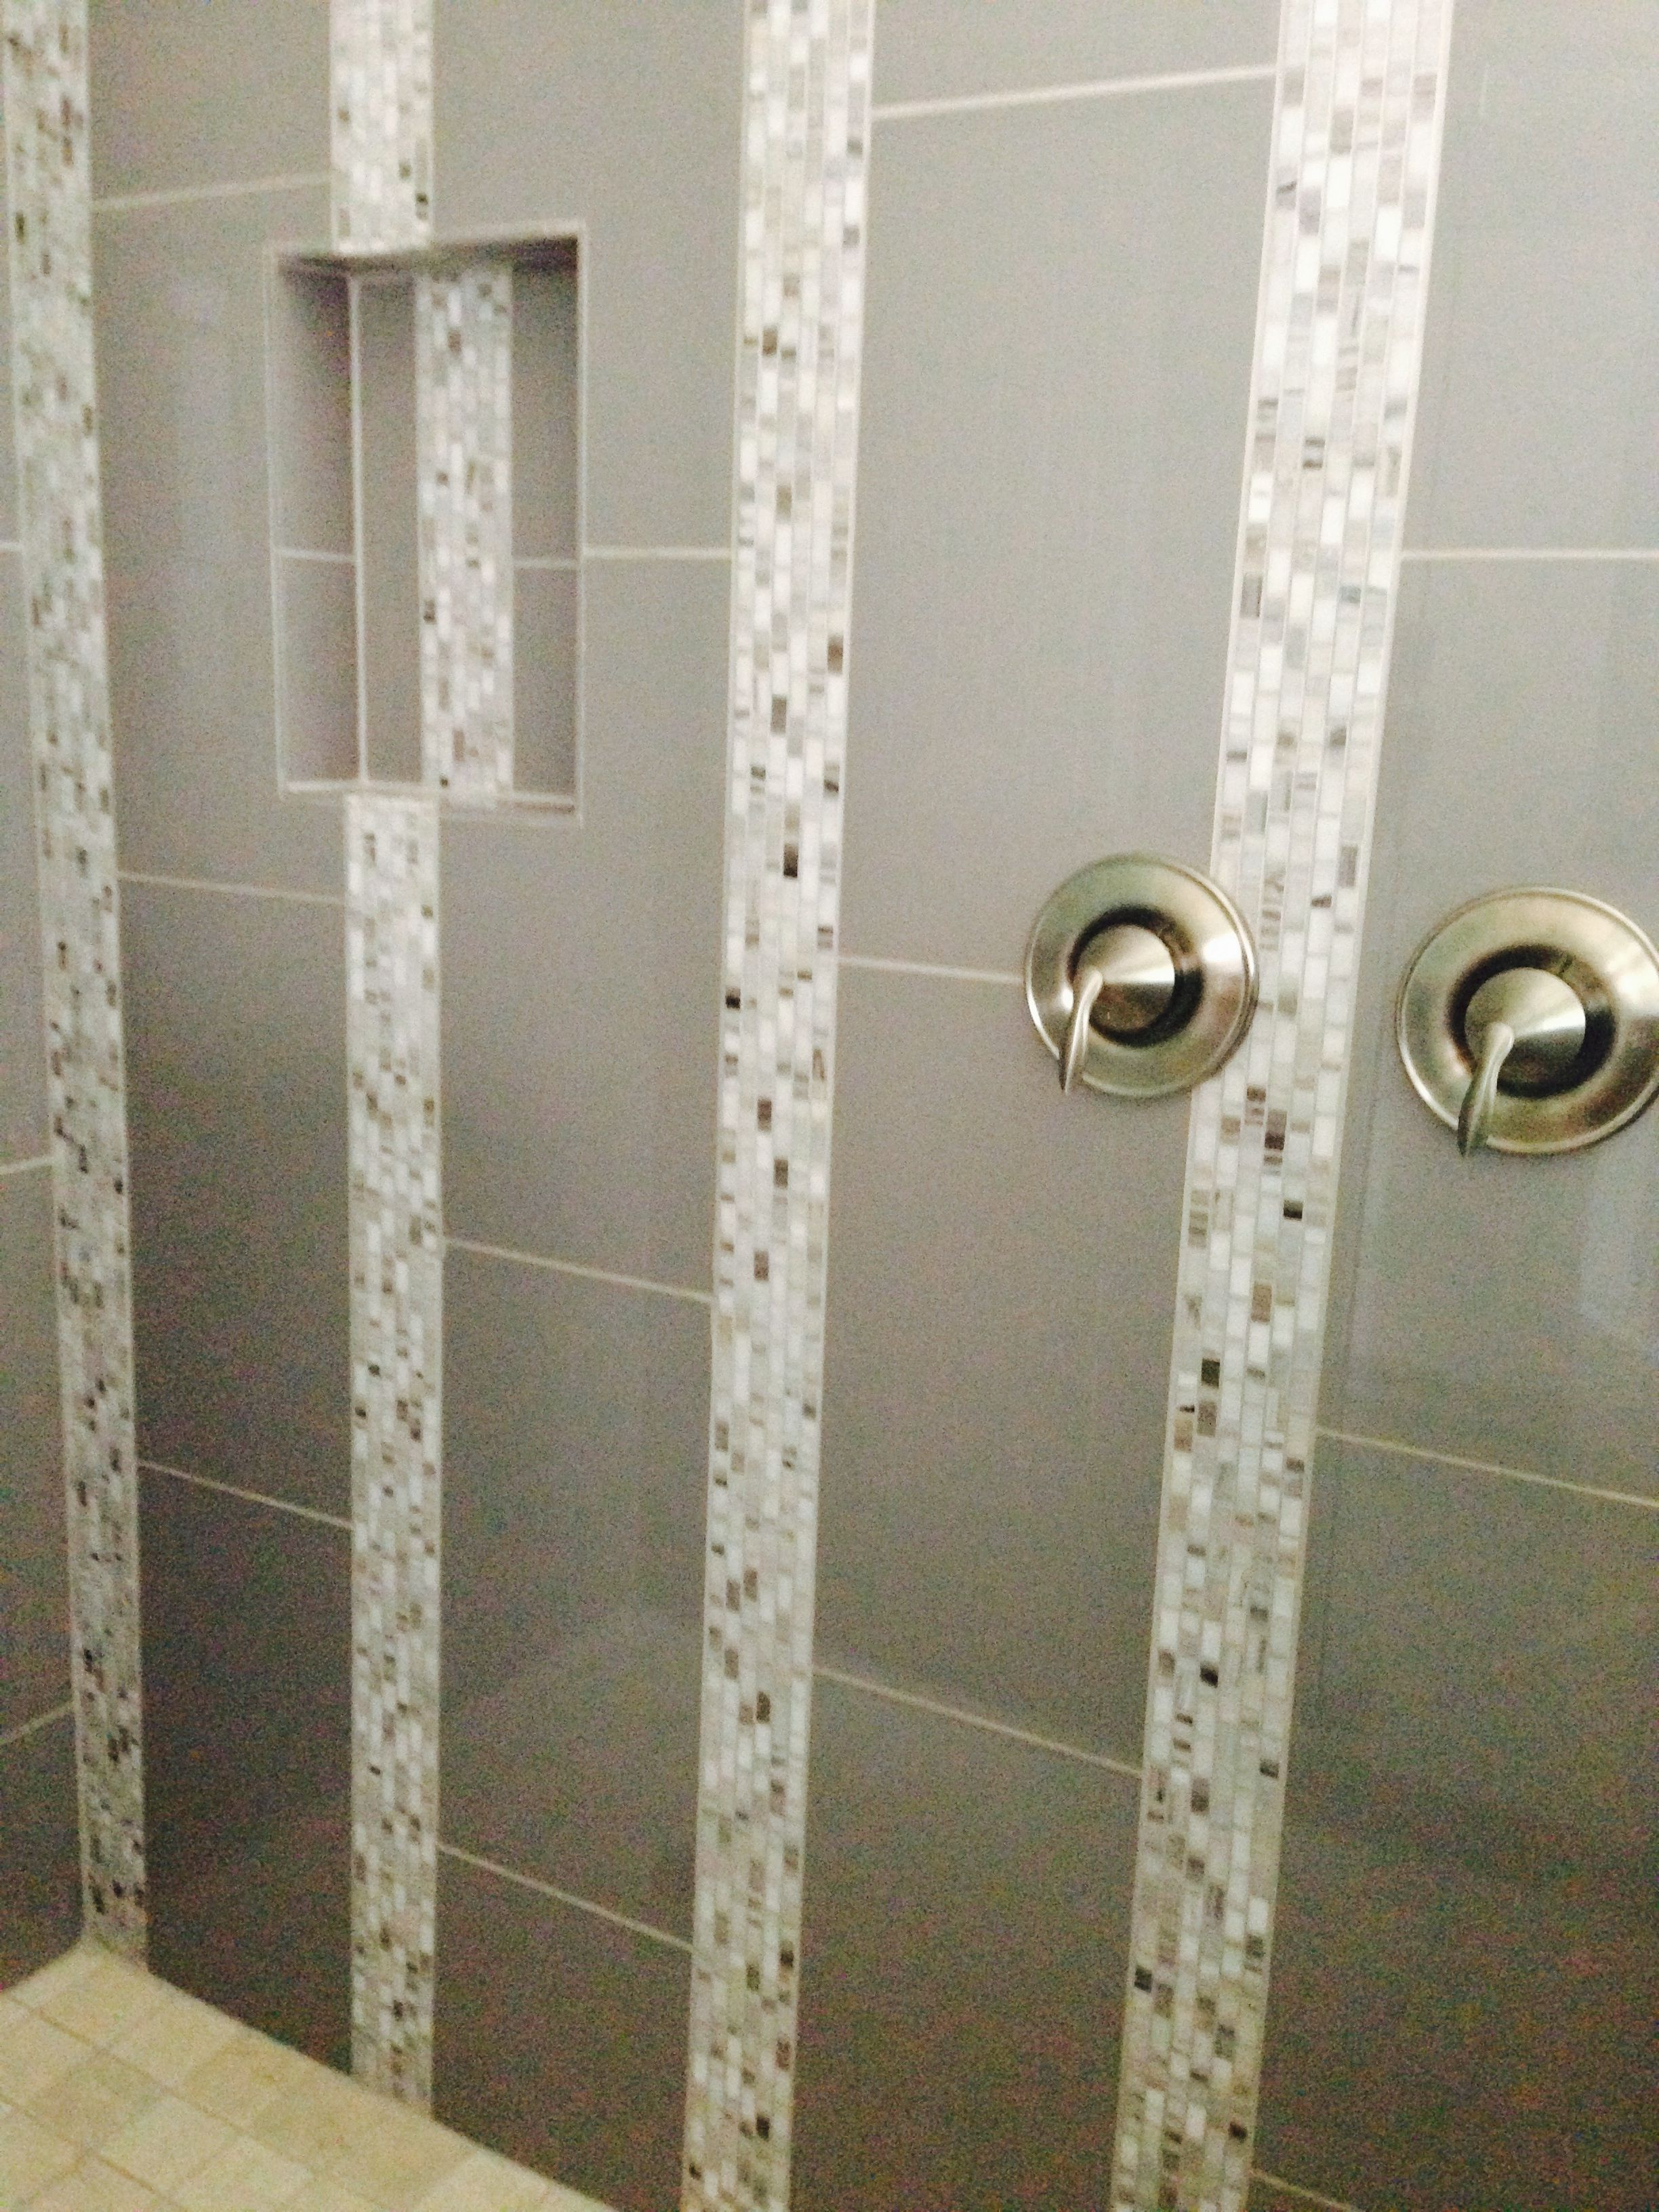 12x24 High Gloss Porcelain Tile With Decorative Mosaic Accent 2x2 Marble Shower Floor And Niche